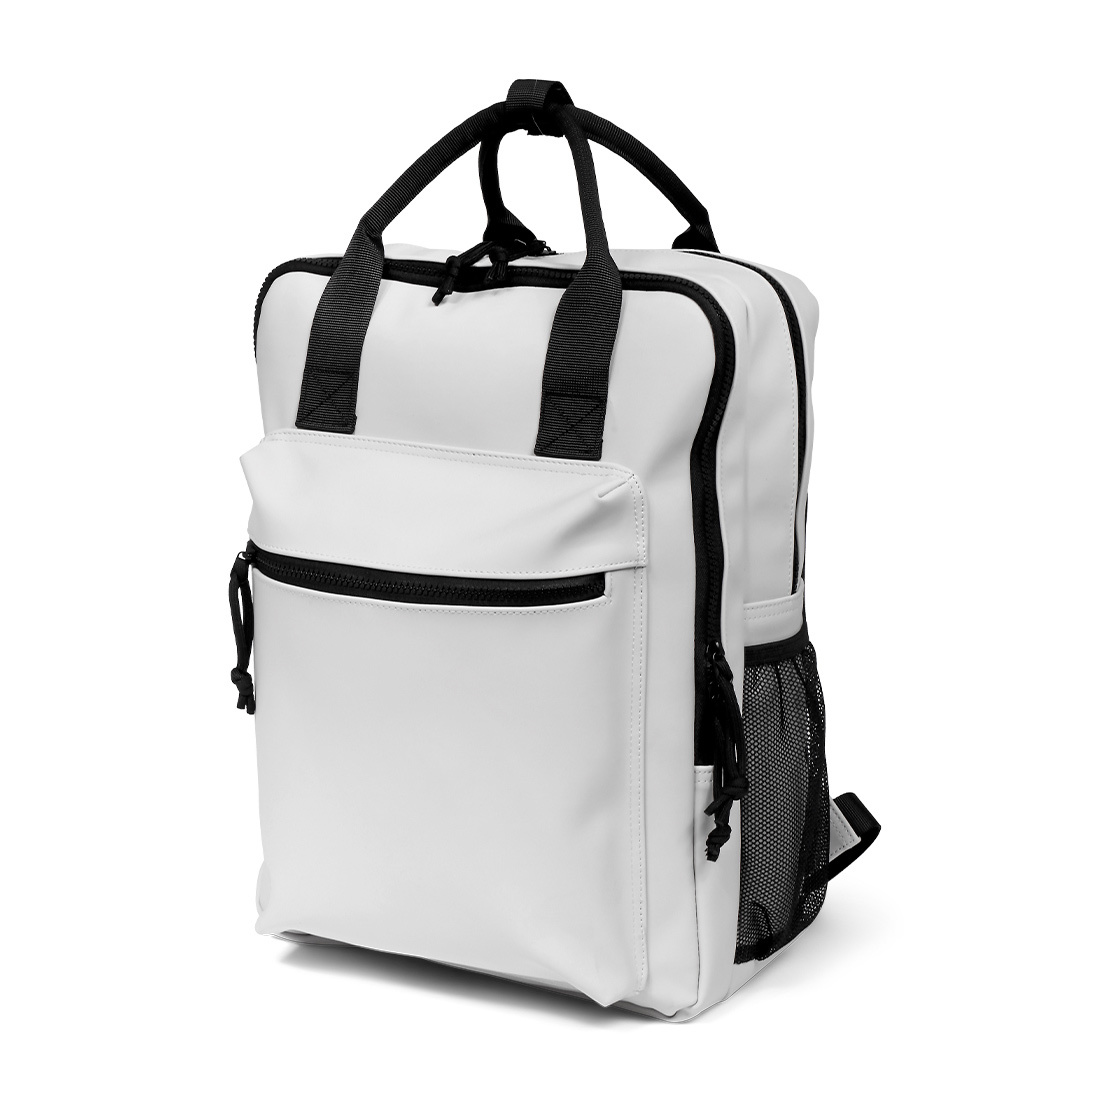 Norländer Dull PU Organizer Backpack Grey